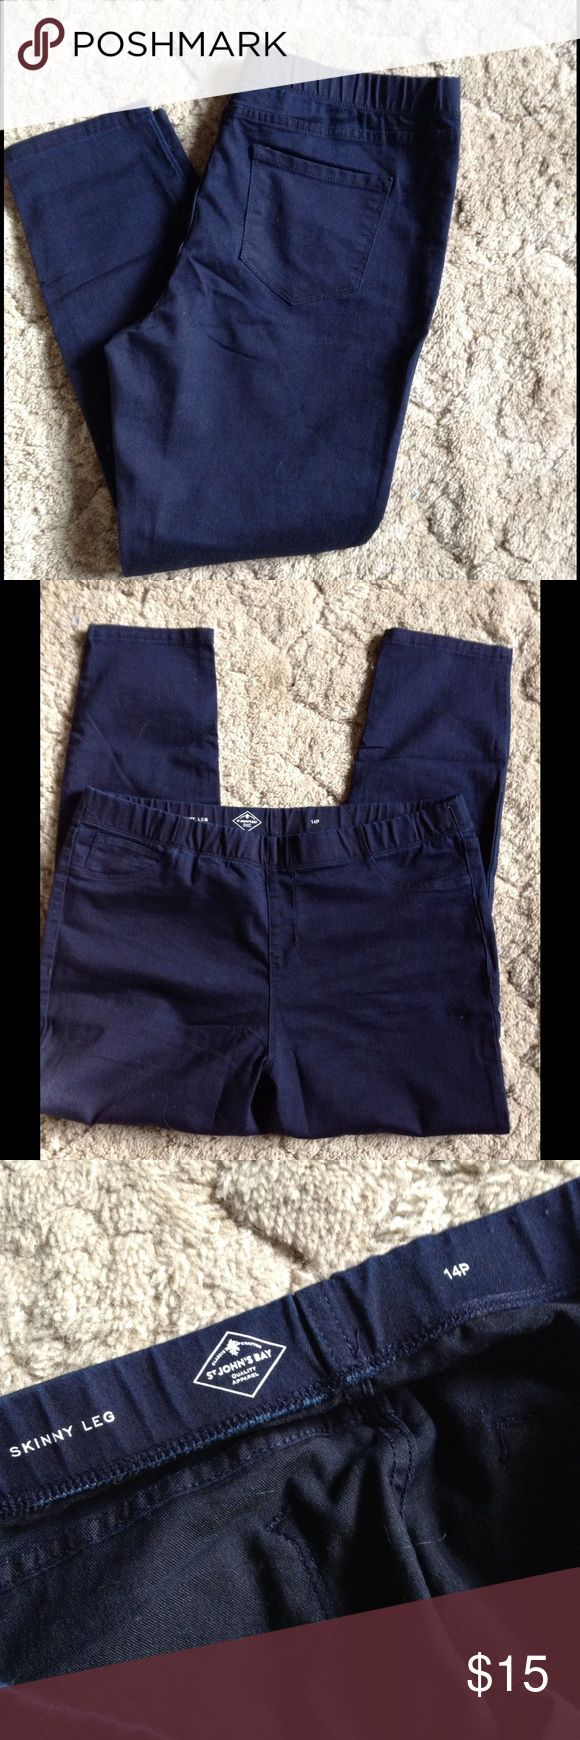 Women's Dark Wash Skinny Jeggings SZ 14P NWOT St Johns Bay women's Jeggings , dark wash, SZ 14.  Never worn, didn't fit, ordered online and never got to return these. St John's Bay Pants Skinny